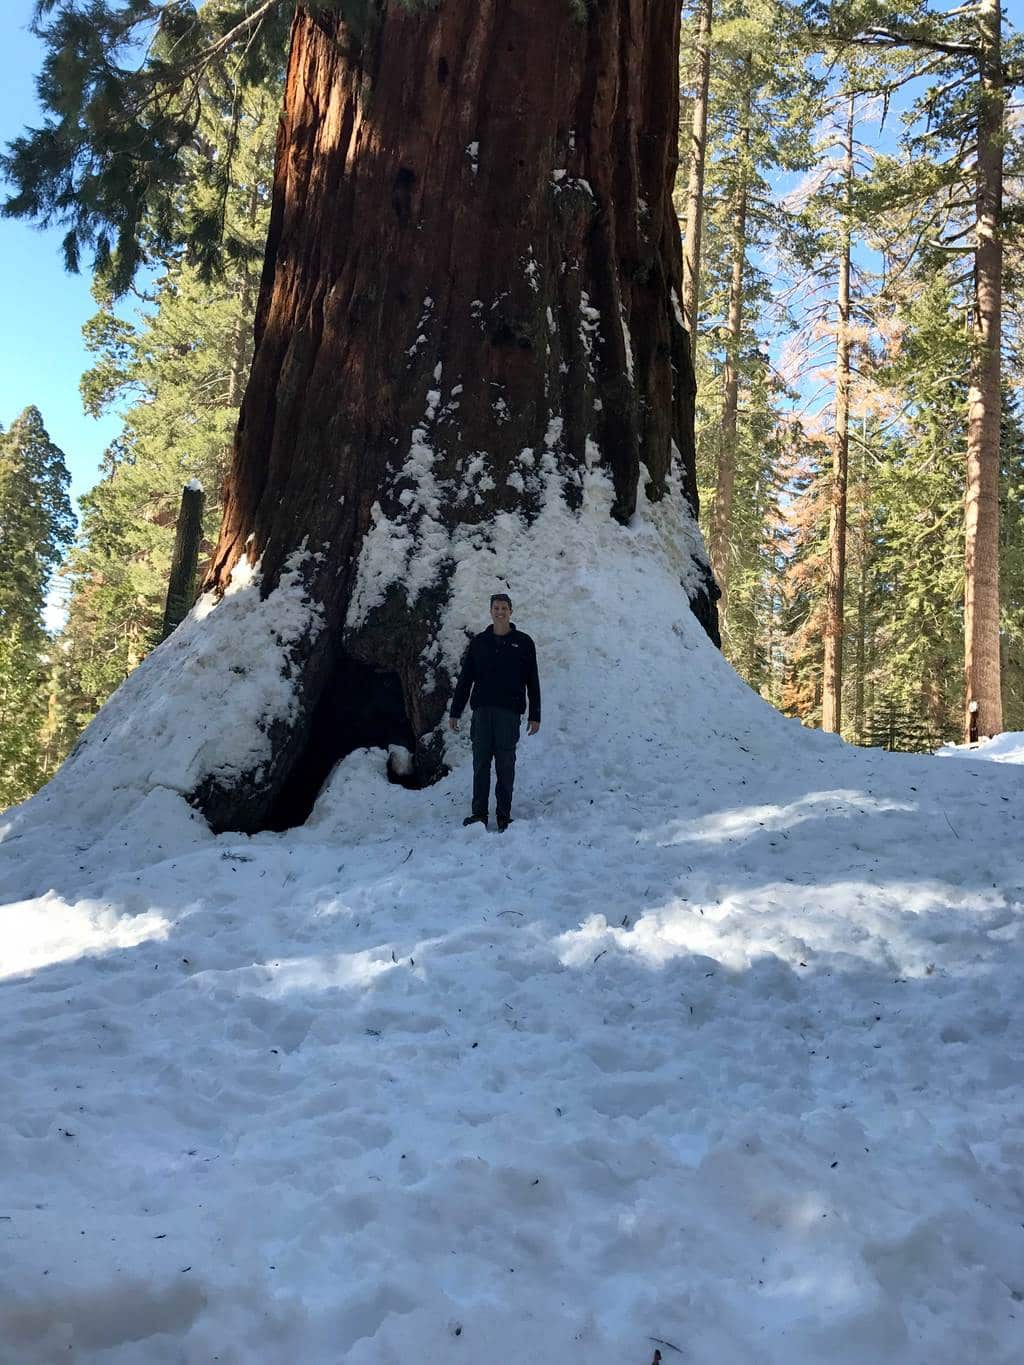 kings-canyon-giant-sequoia-general-sherman-tree-12